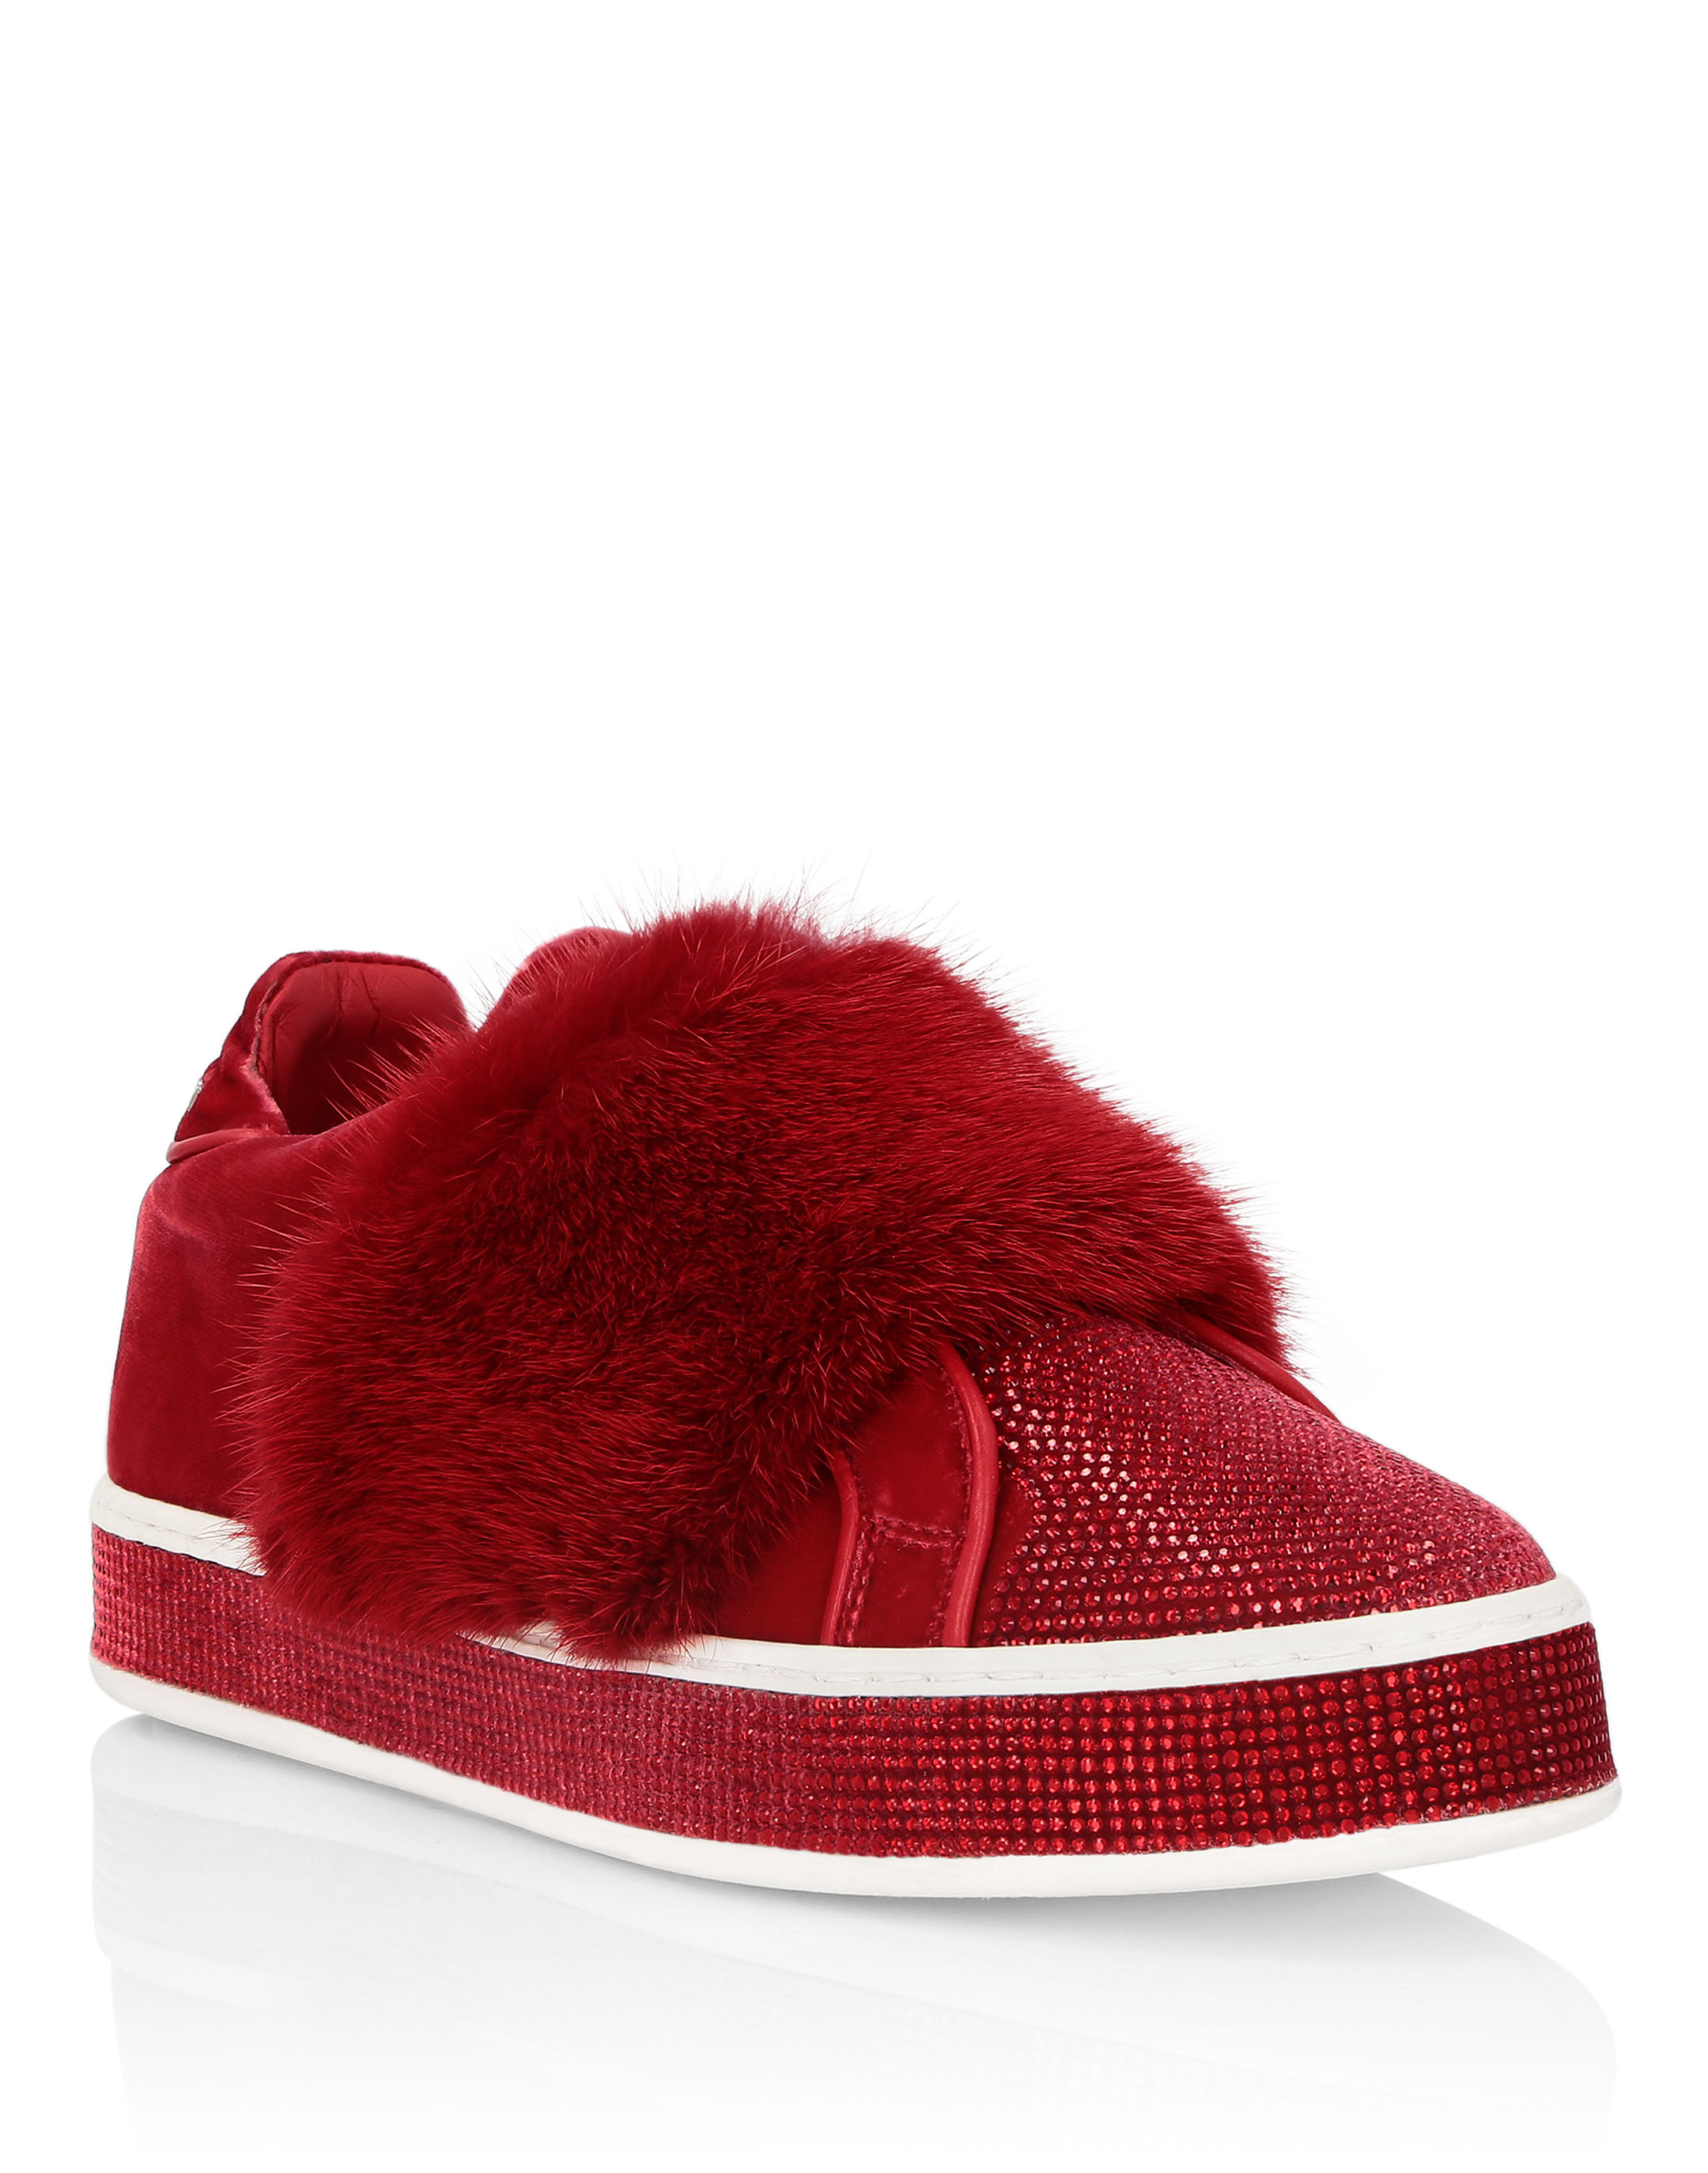 Lo-Top Sneakers Luxury in Red from PHILIPP PLEIN